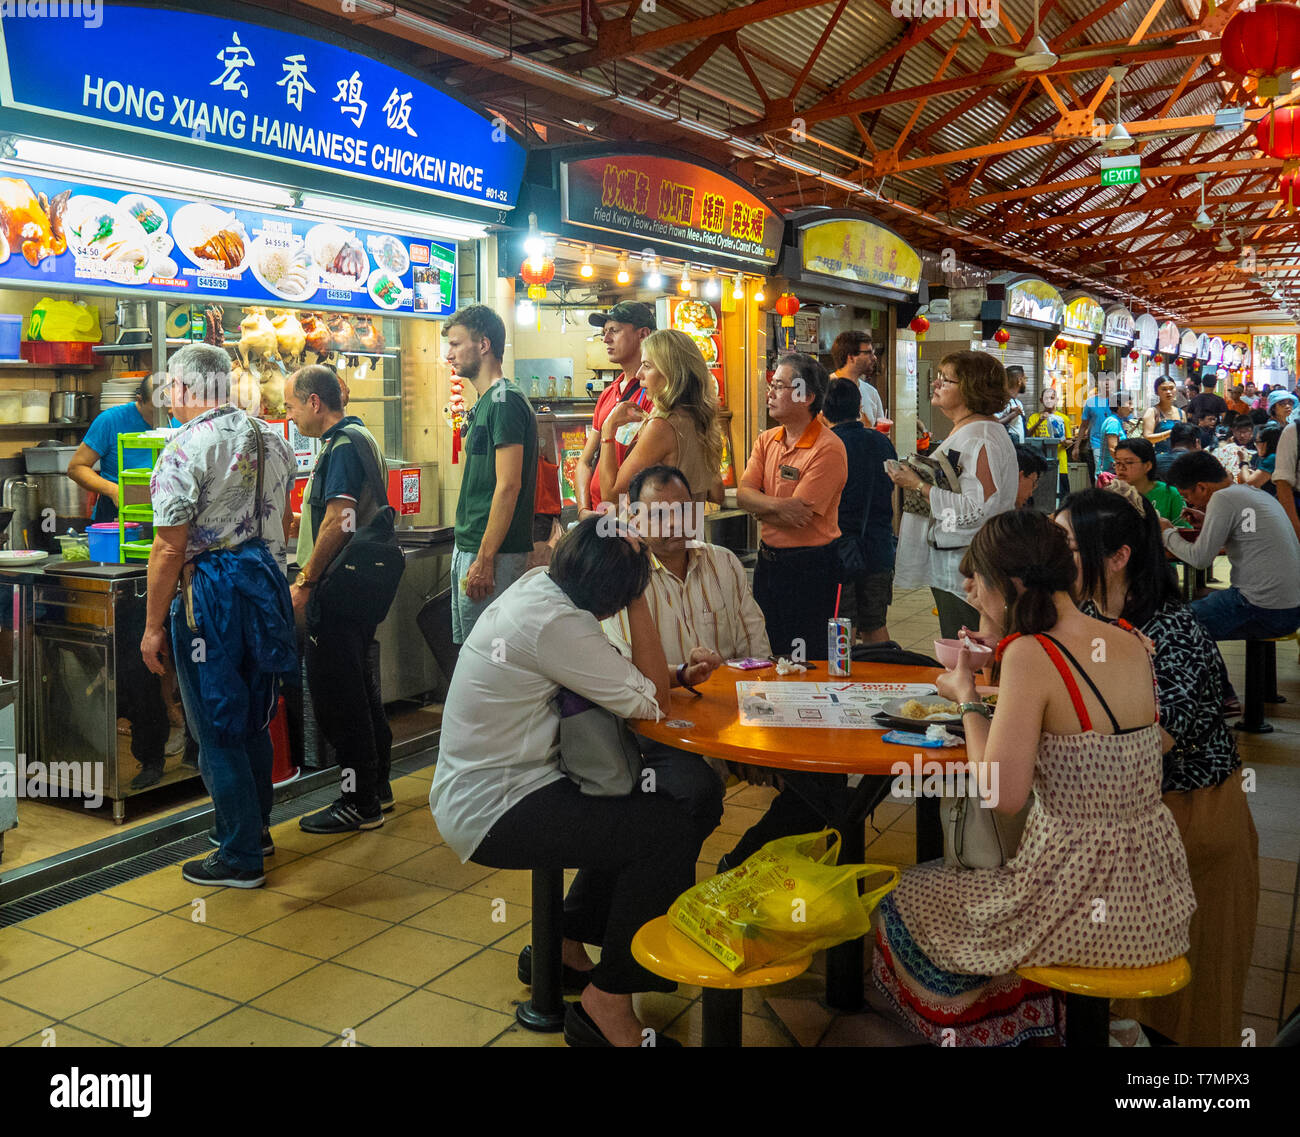 people-locals-queuing-for-hainanese-chicken-rice-at-maxwell-food-centre-a-hawkers-food-hall-in-tanjong-pagar-singapore-T7MPX3.jpg